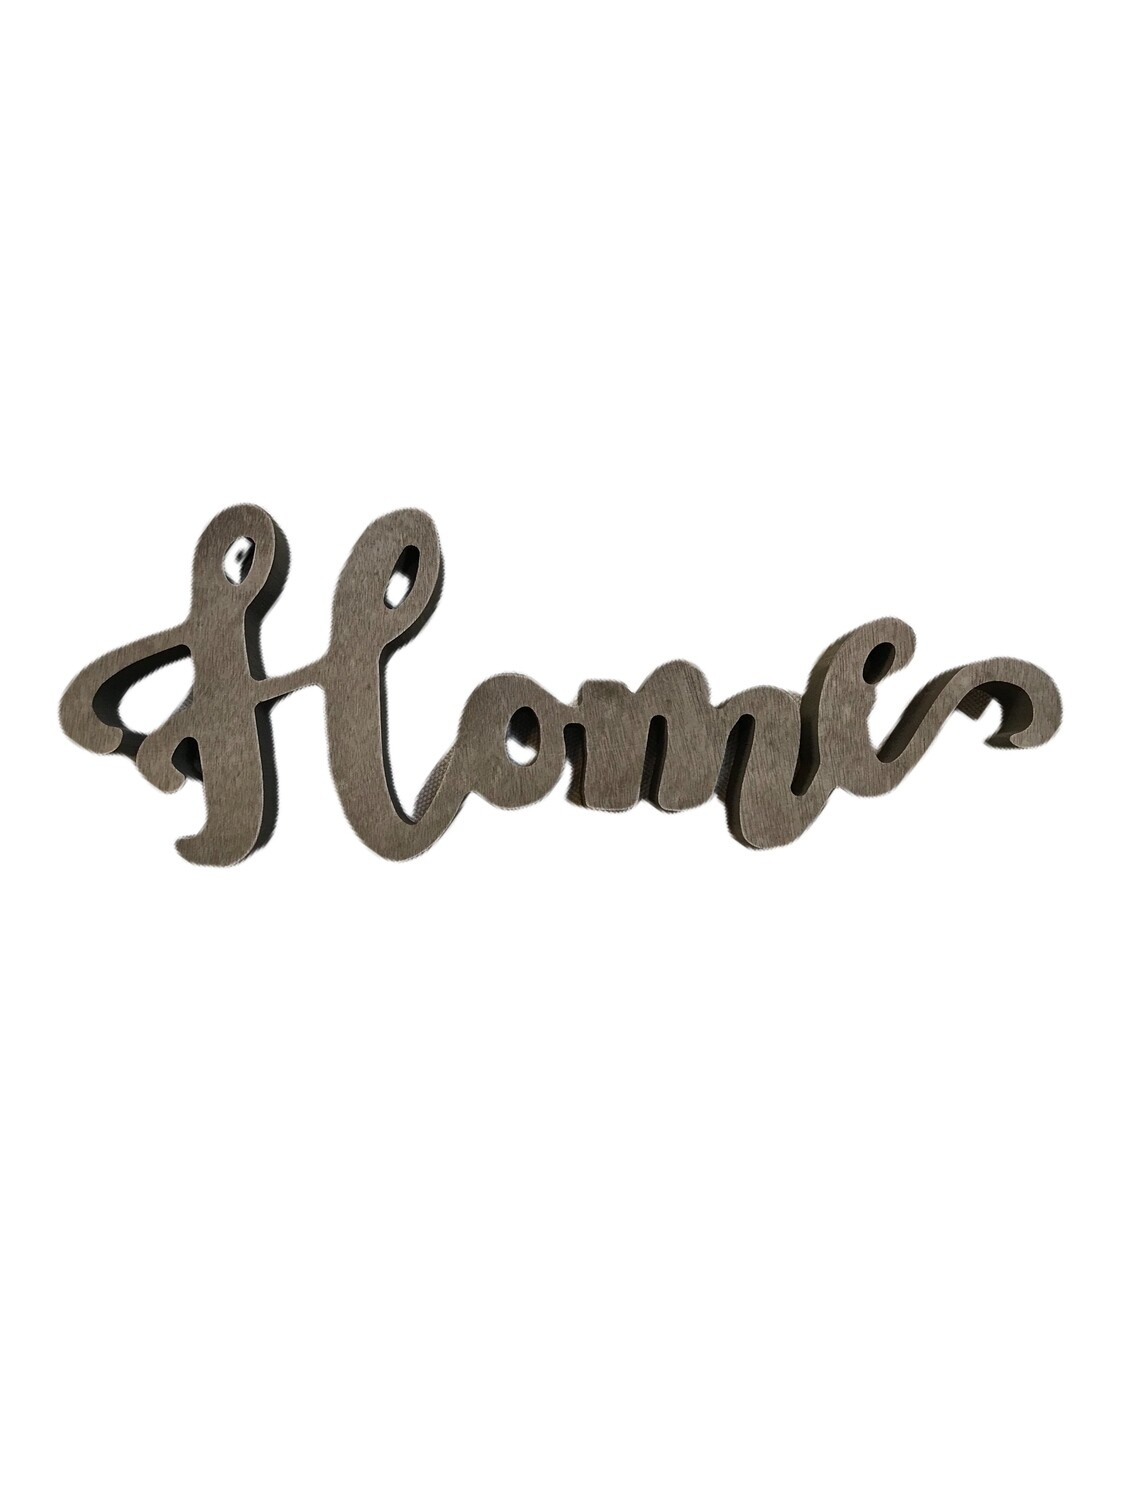 Home cutout tabletop sign